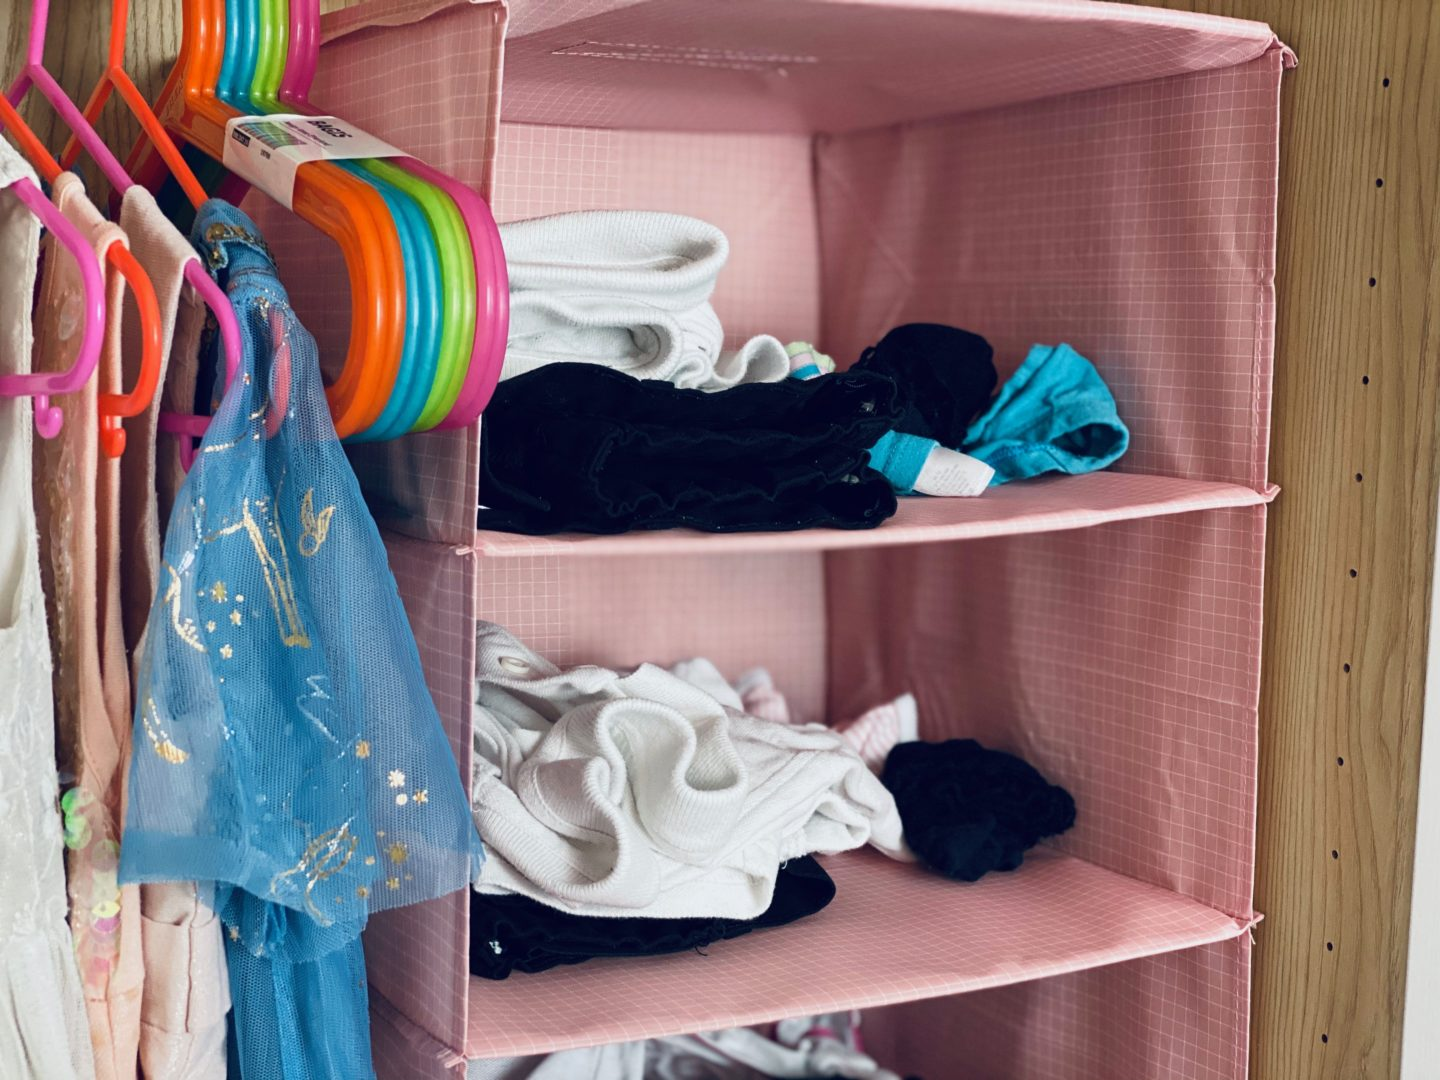 AD: Taking back control of mornings for only £51.75 with IKEA organisation hacks. Kid's wardrobe with hanging organiser hack.